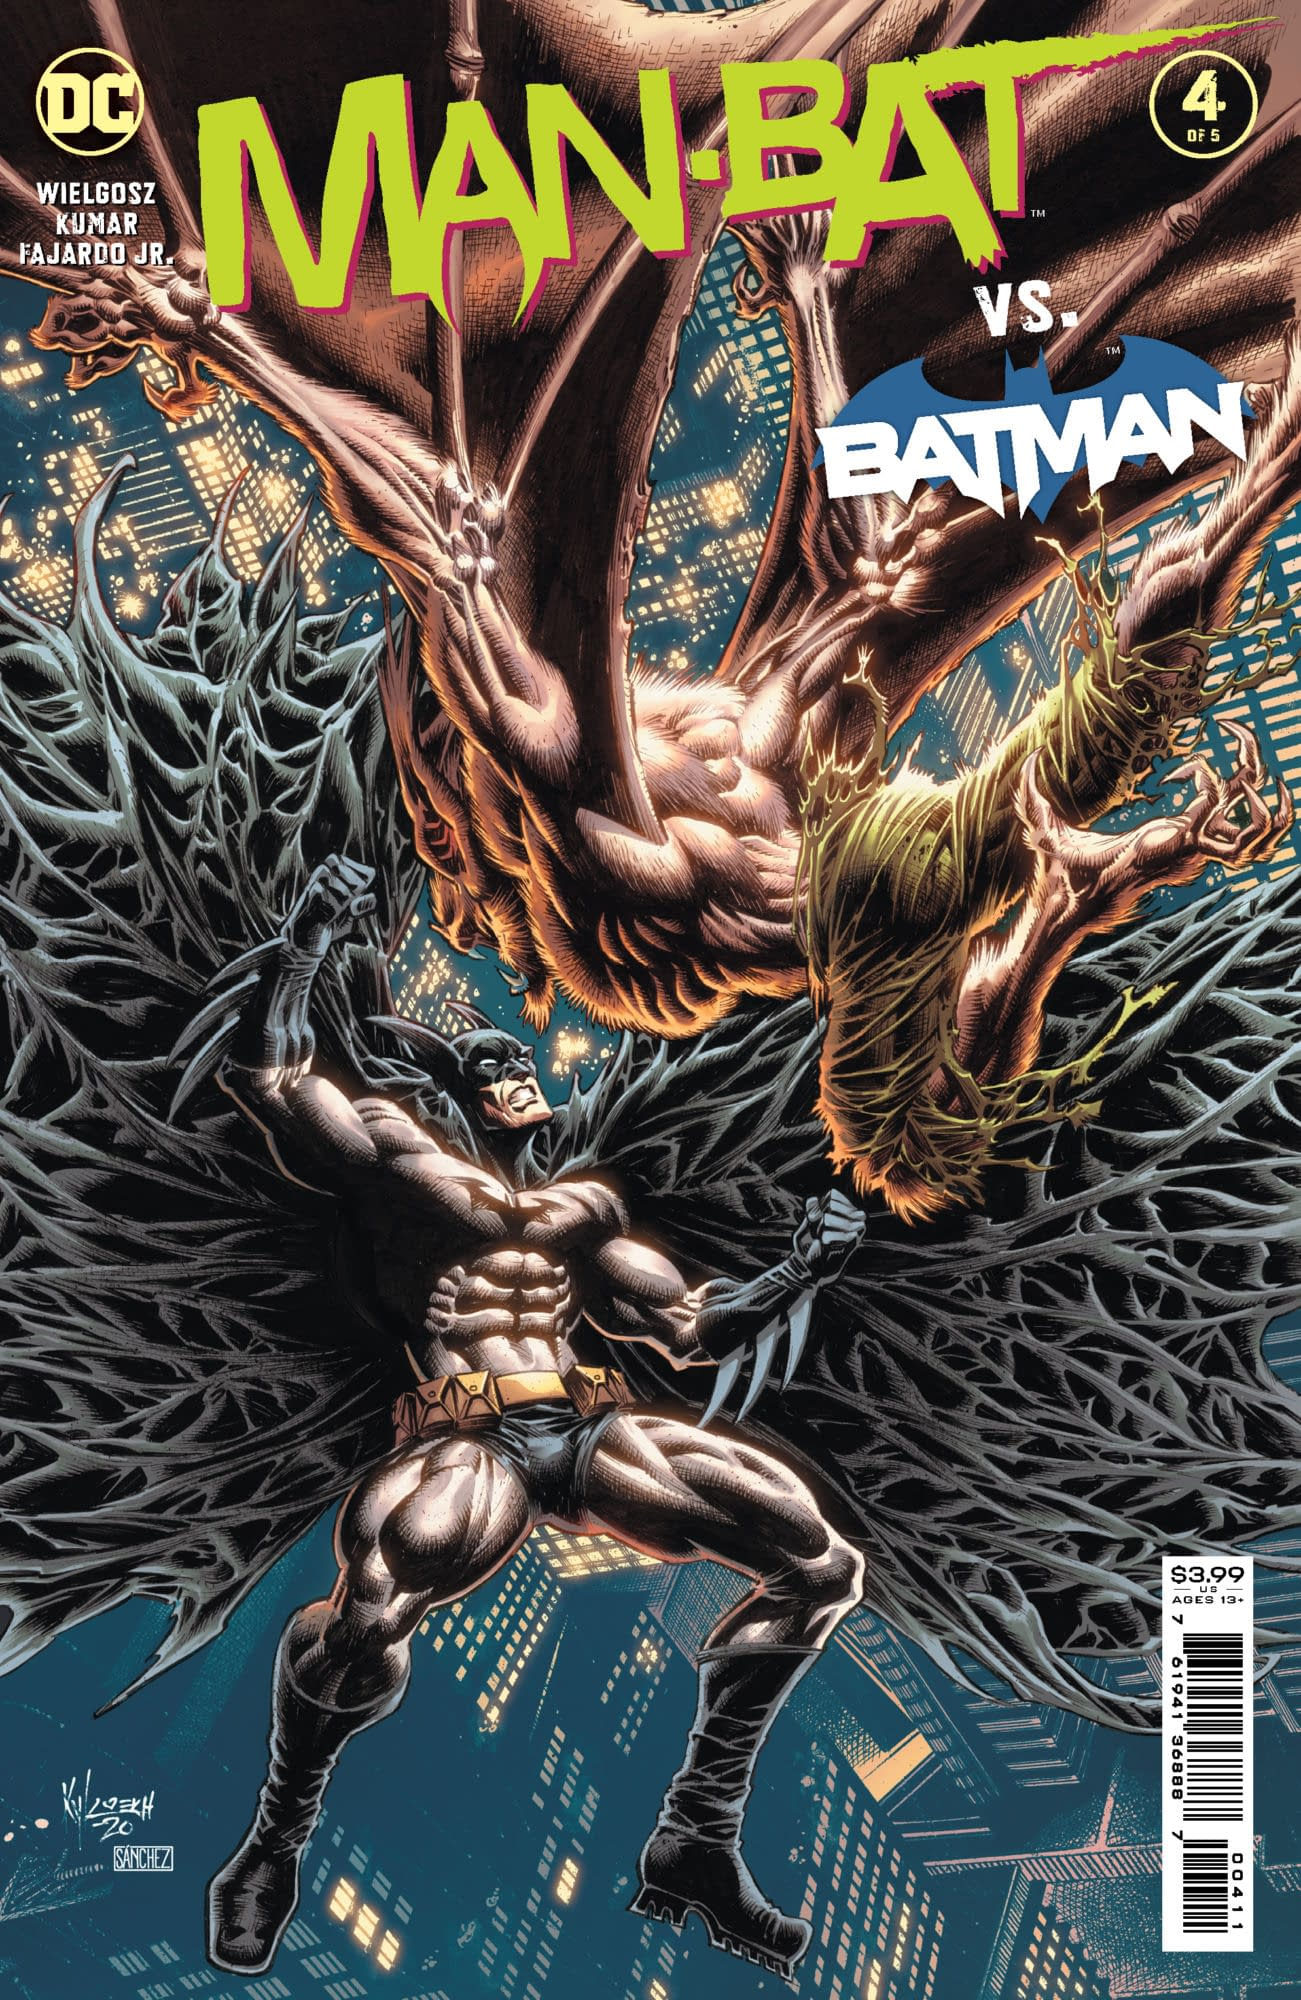 Cover image for MAN-BAT #4 (OF 5)